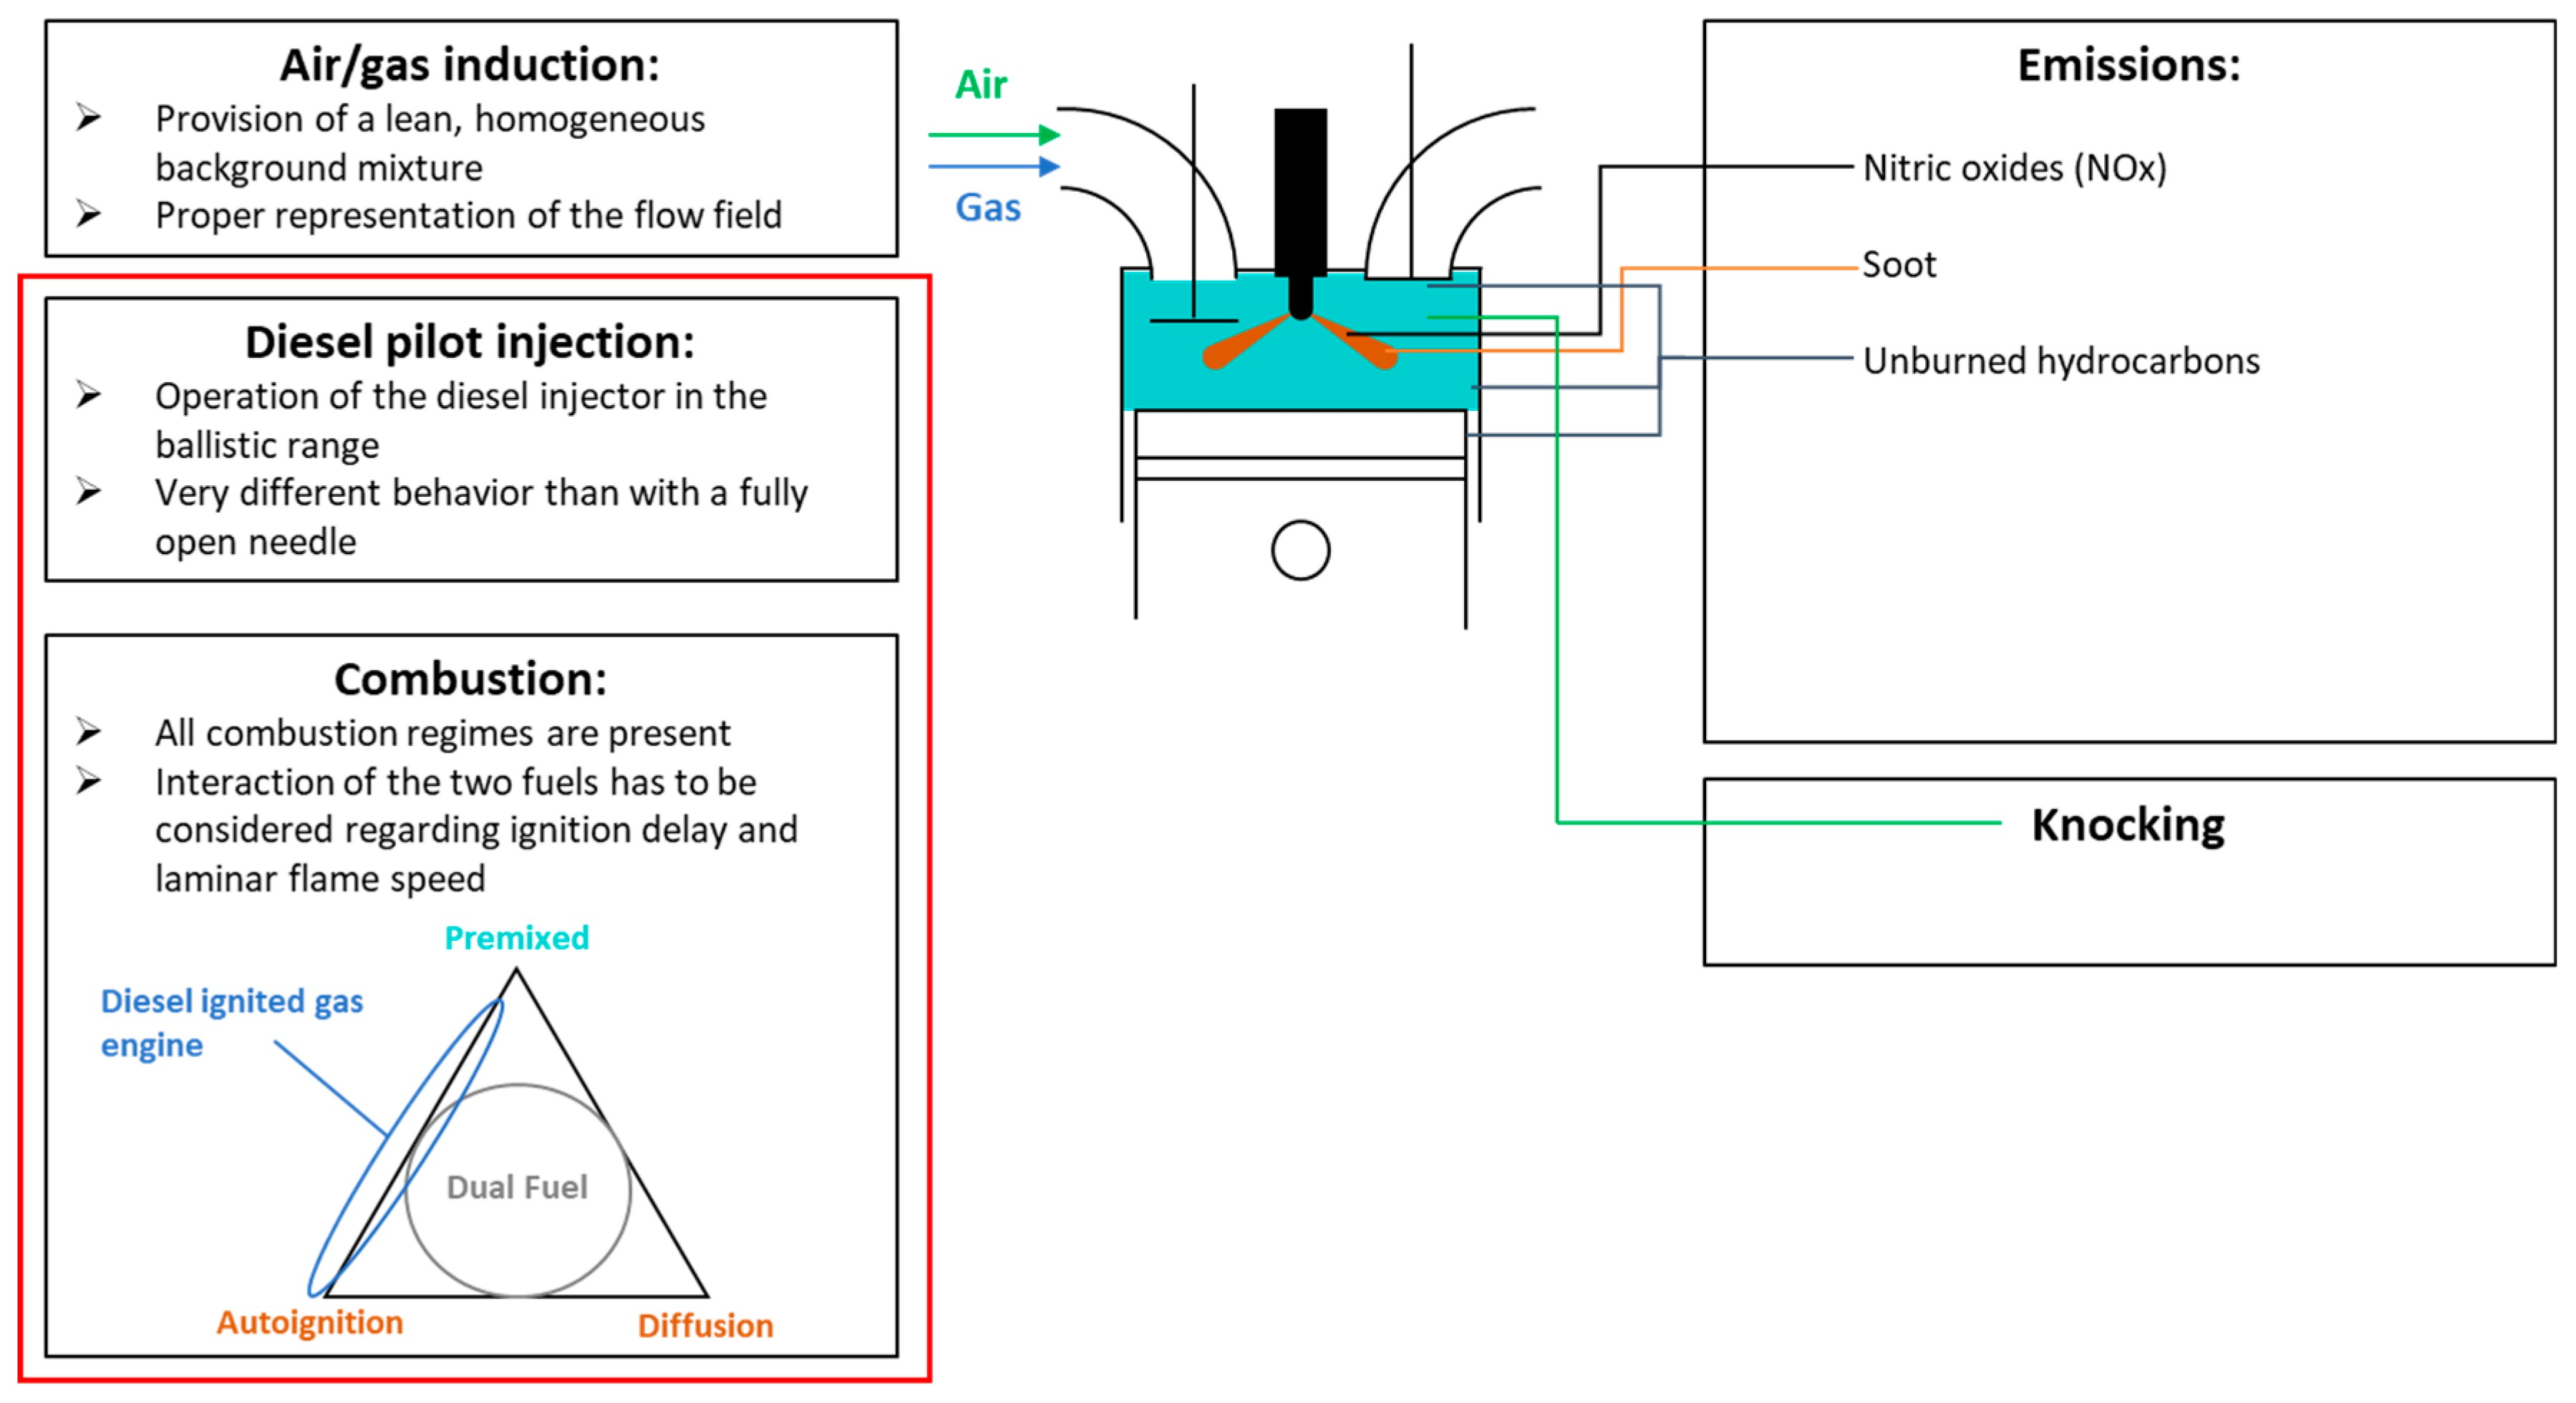 Valve Timing Diagram for Four Stroke Petrol Engine Energies Free Full Text Of Valve Timing Diagram for Four Stroke Petrol Engine